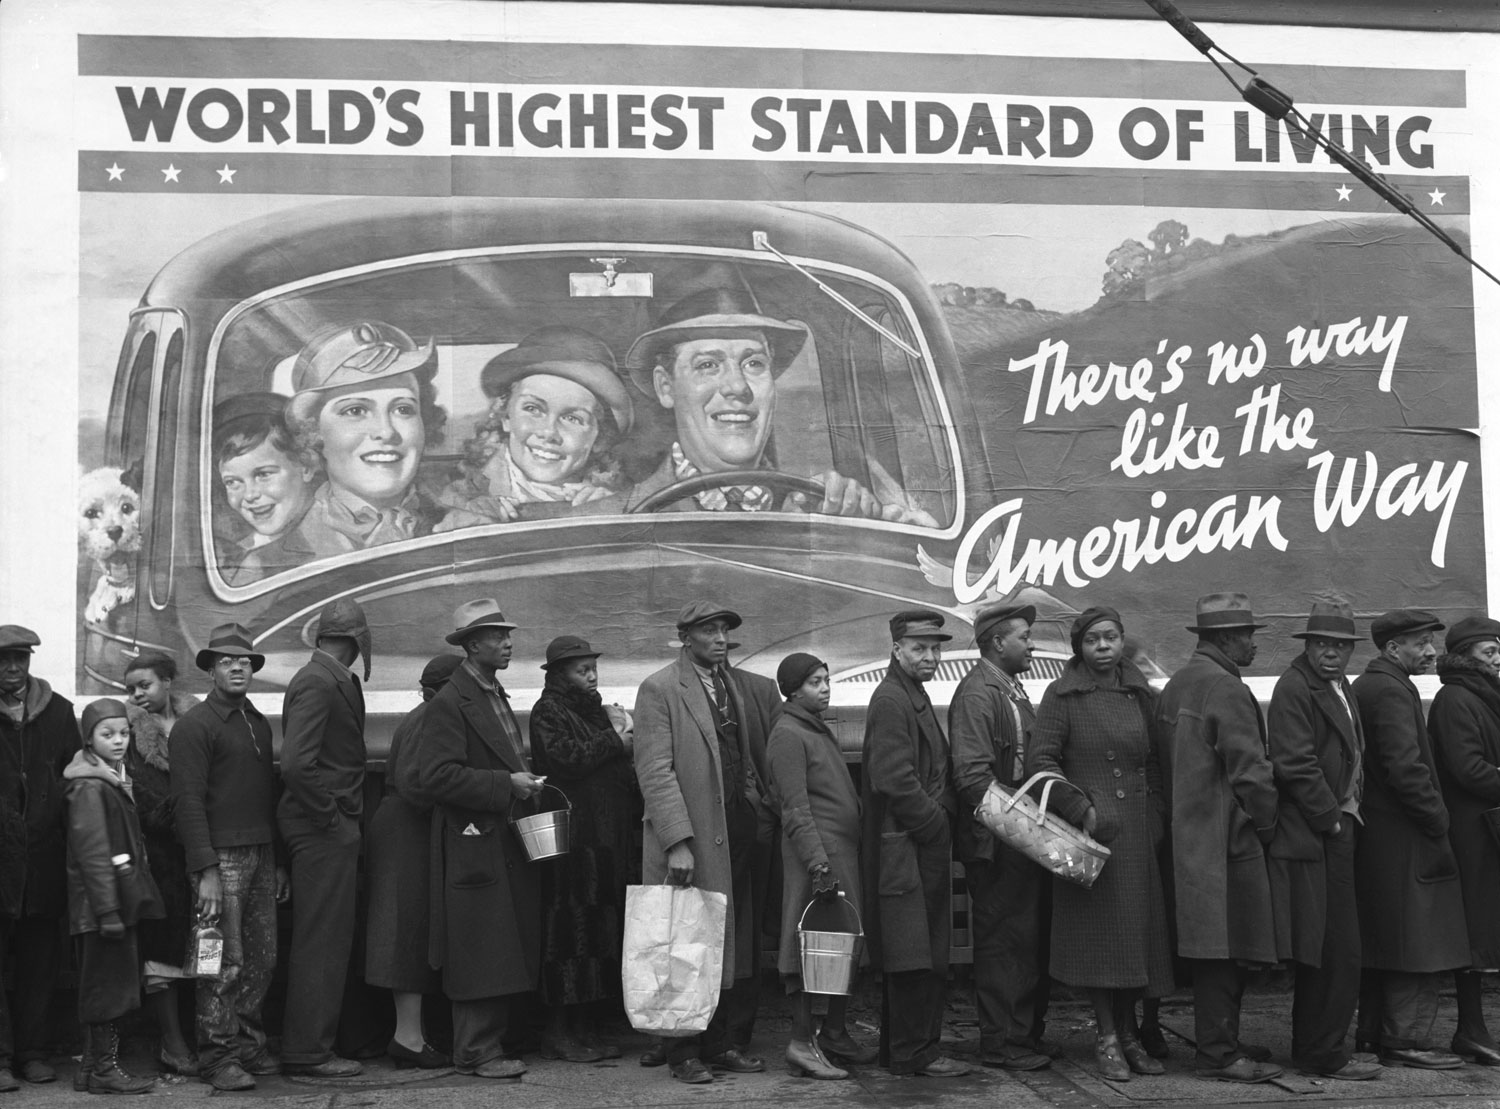 an analysis of americas great depression and economical status during the world war ii